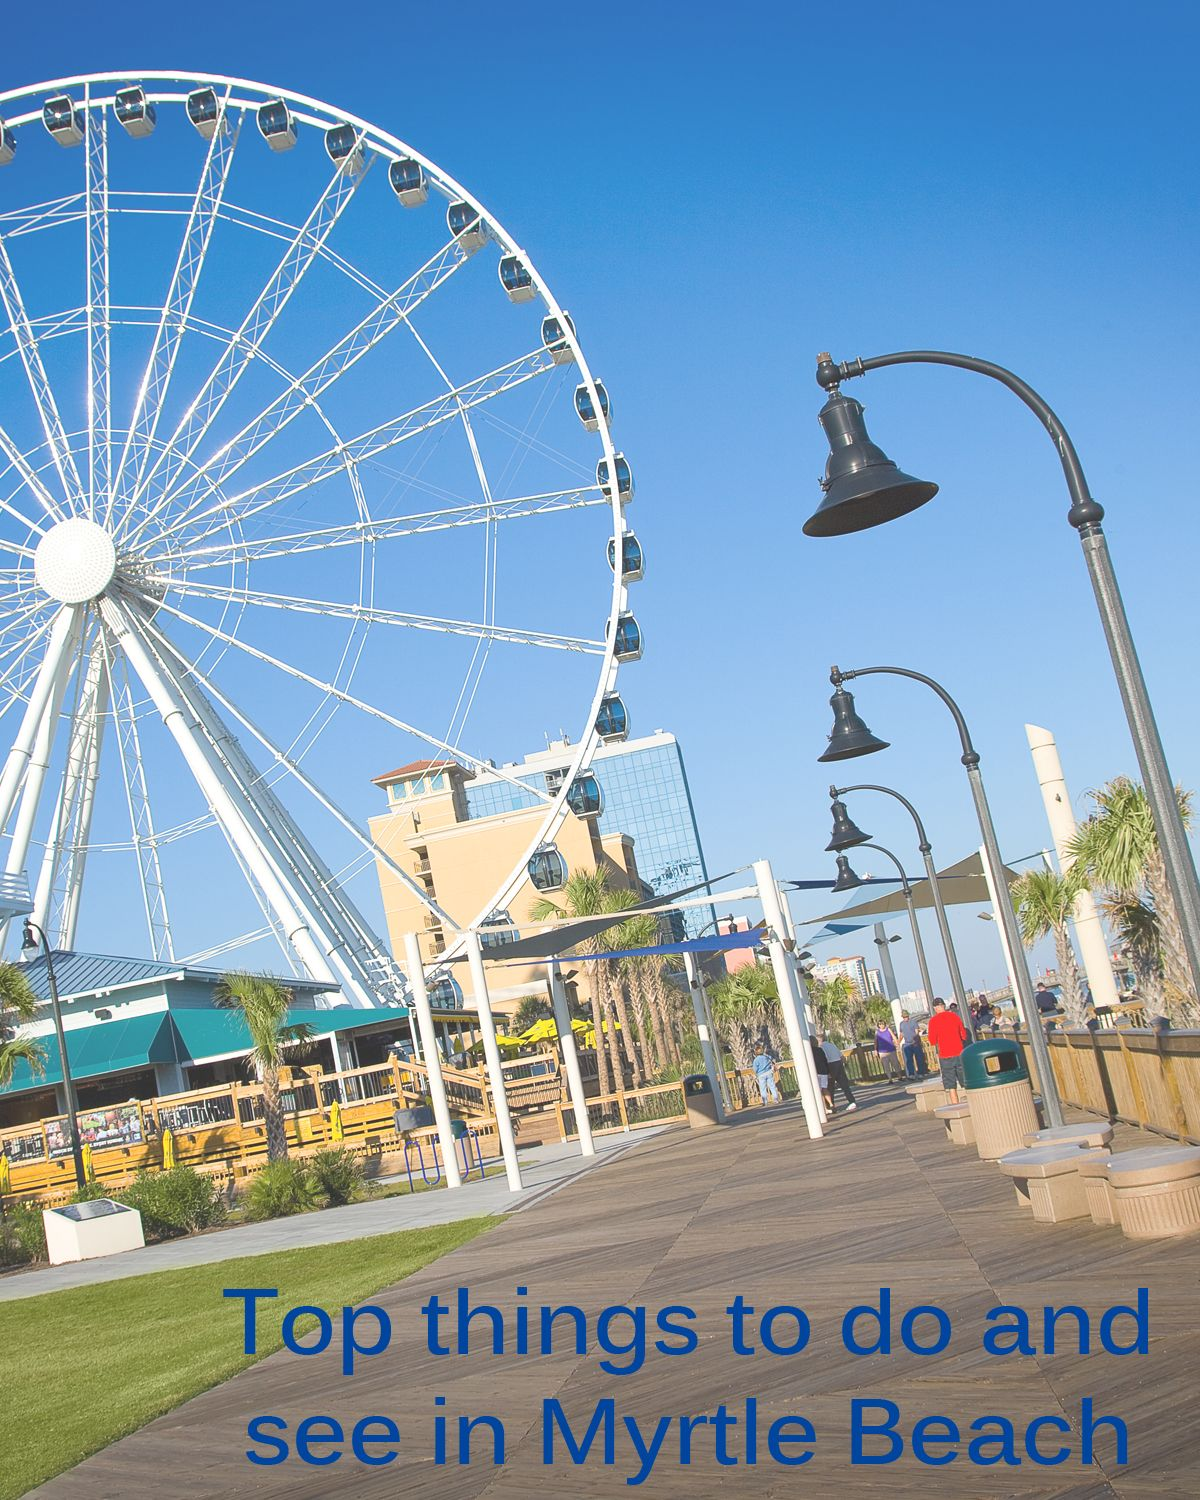 Top things to do and see in Myrtle Beach Great to know